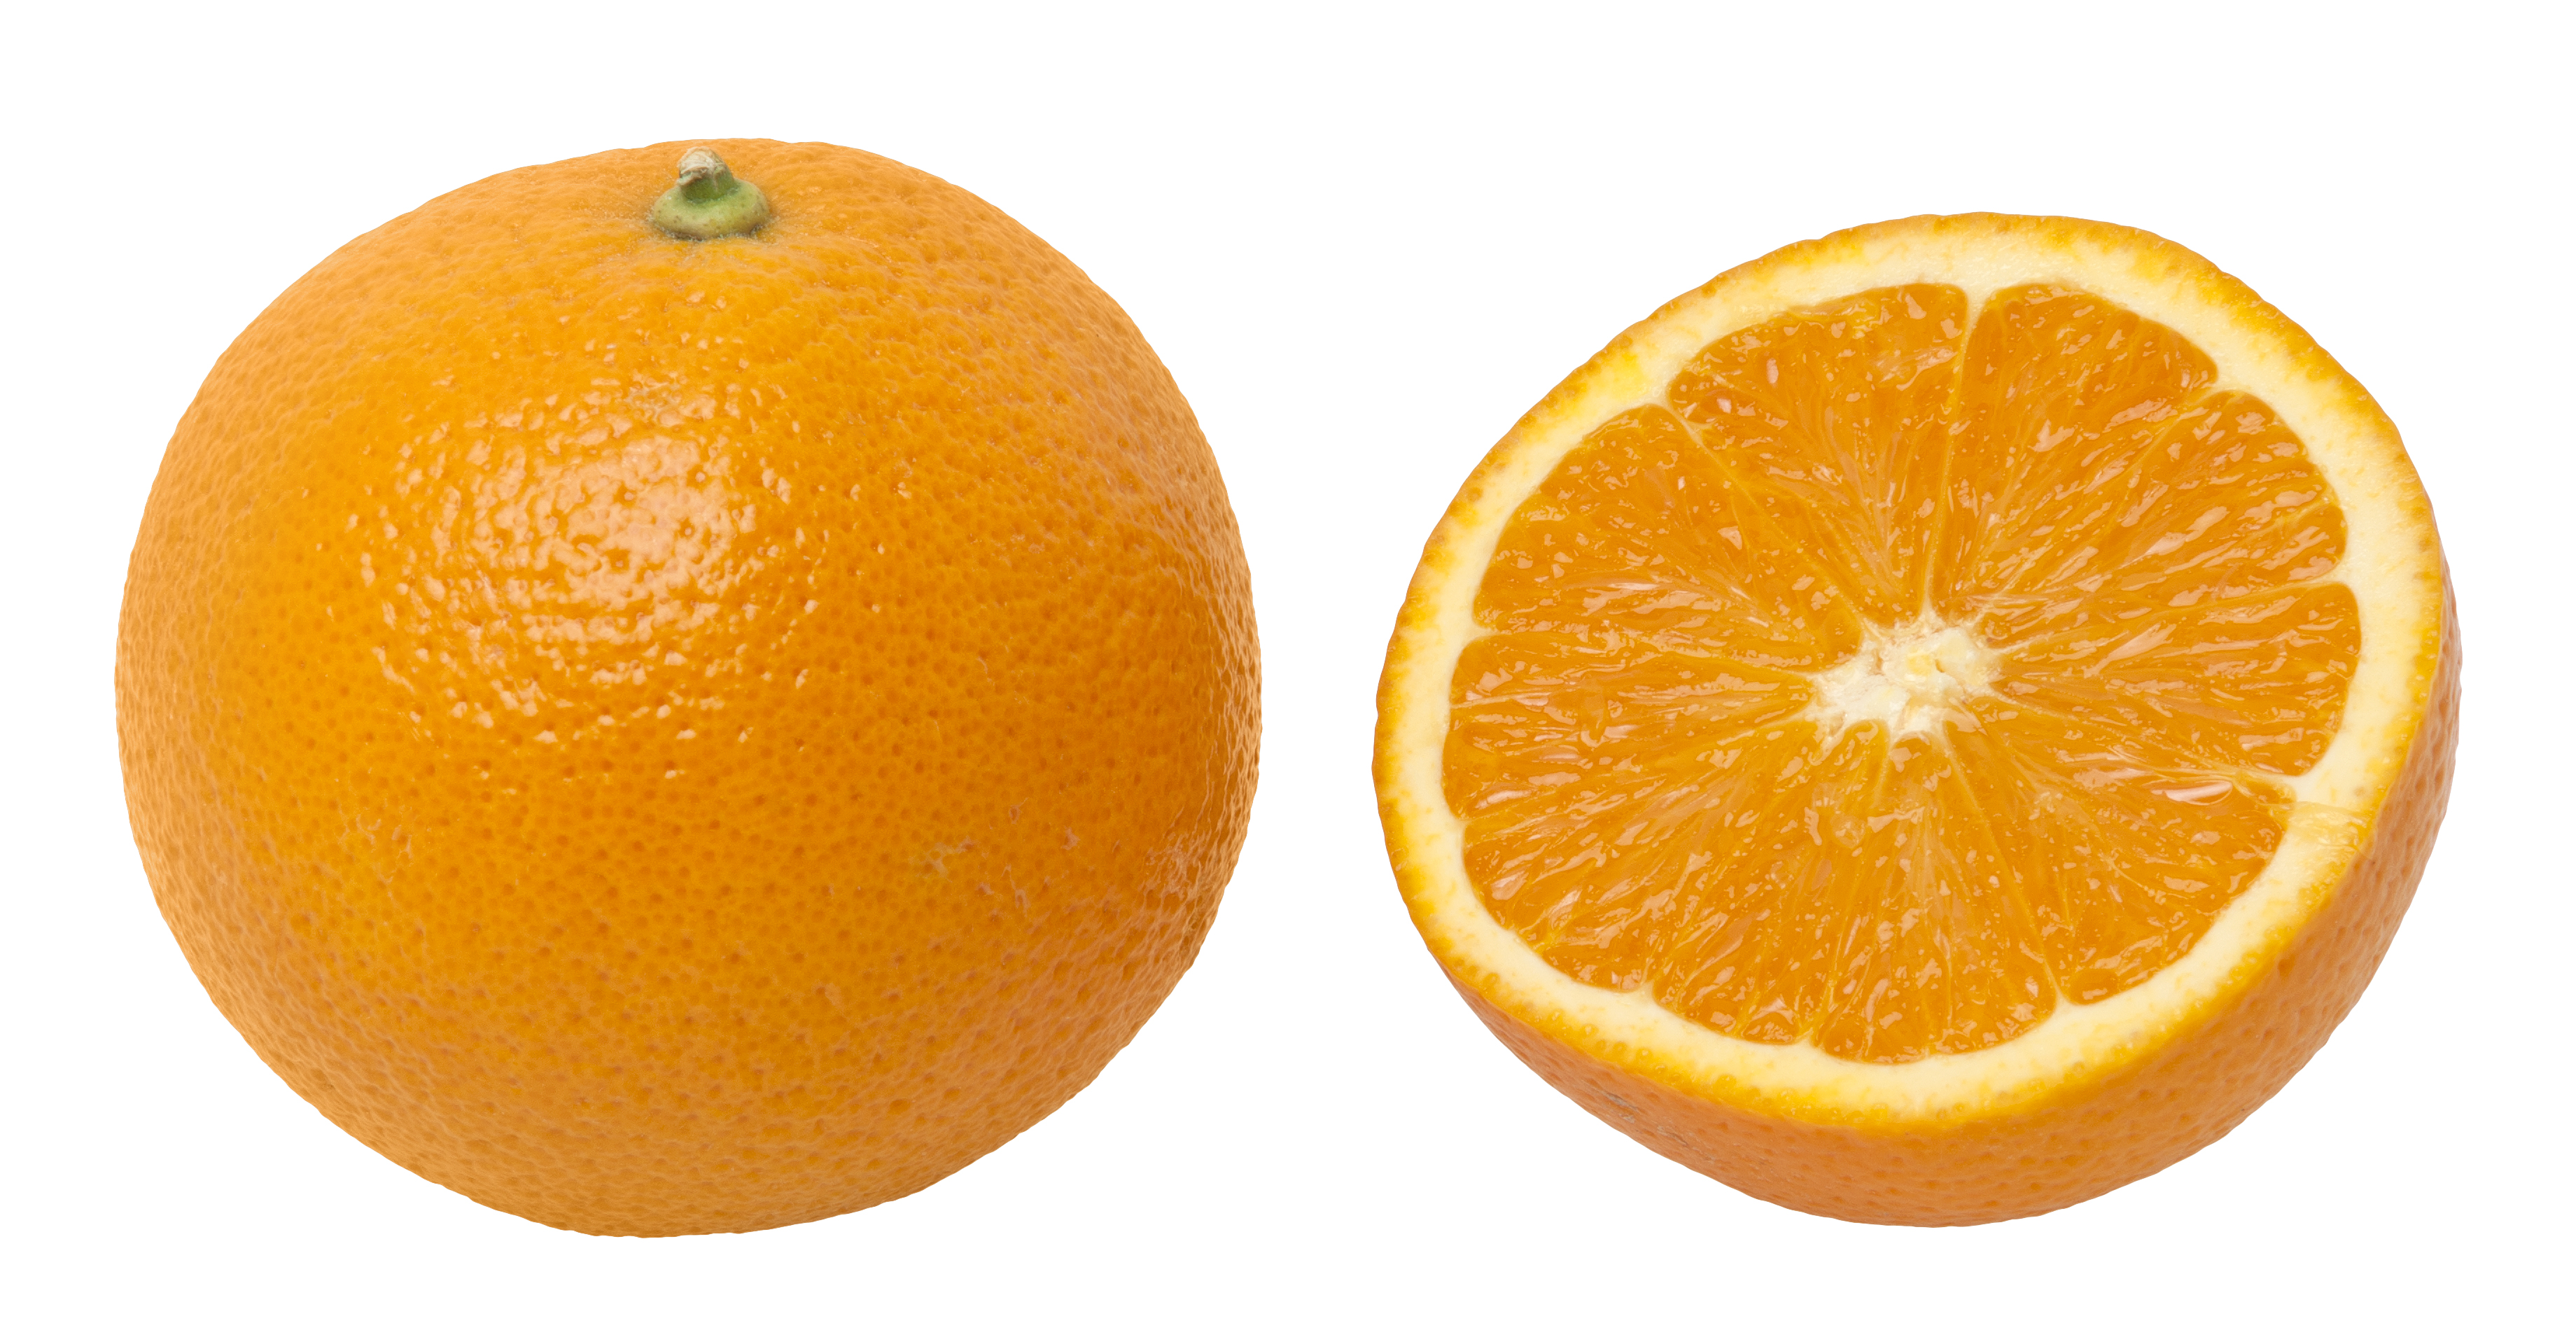 Orange Fruit Pictures